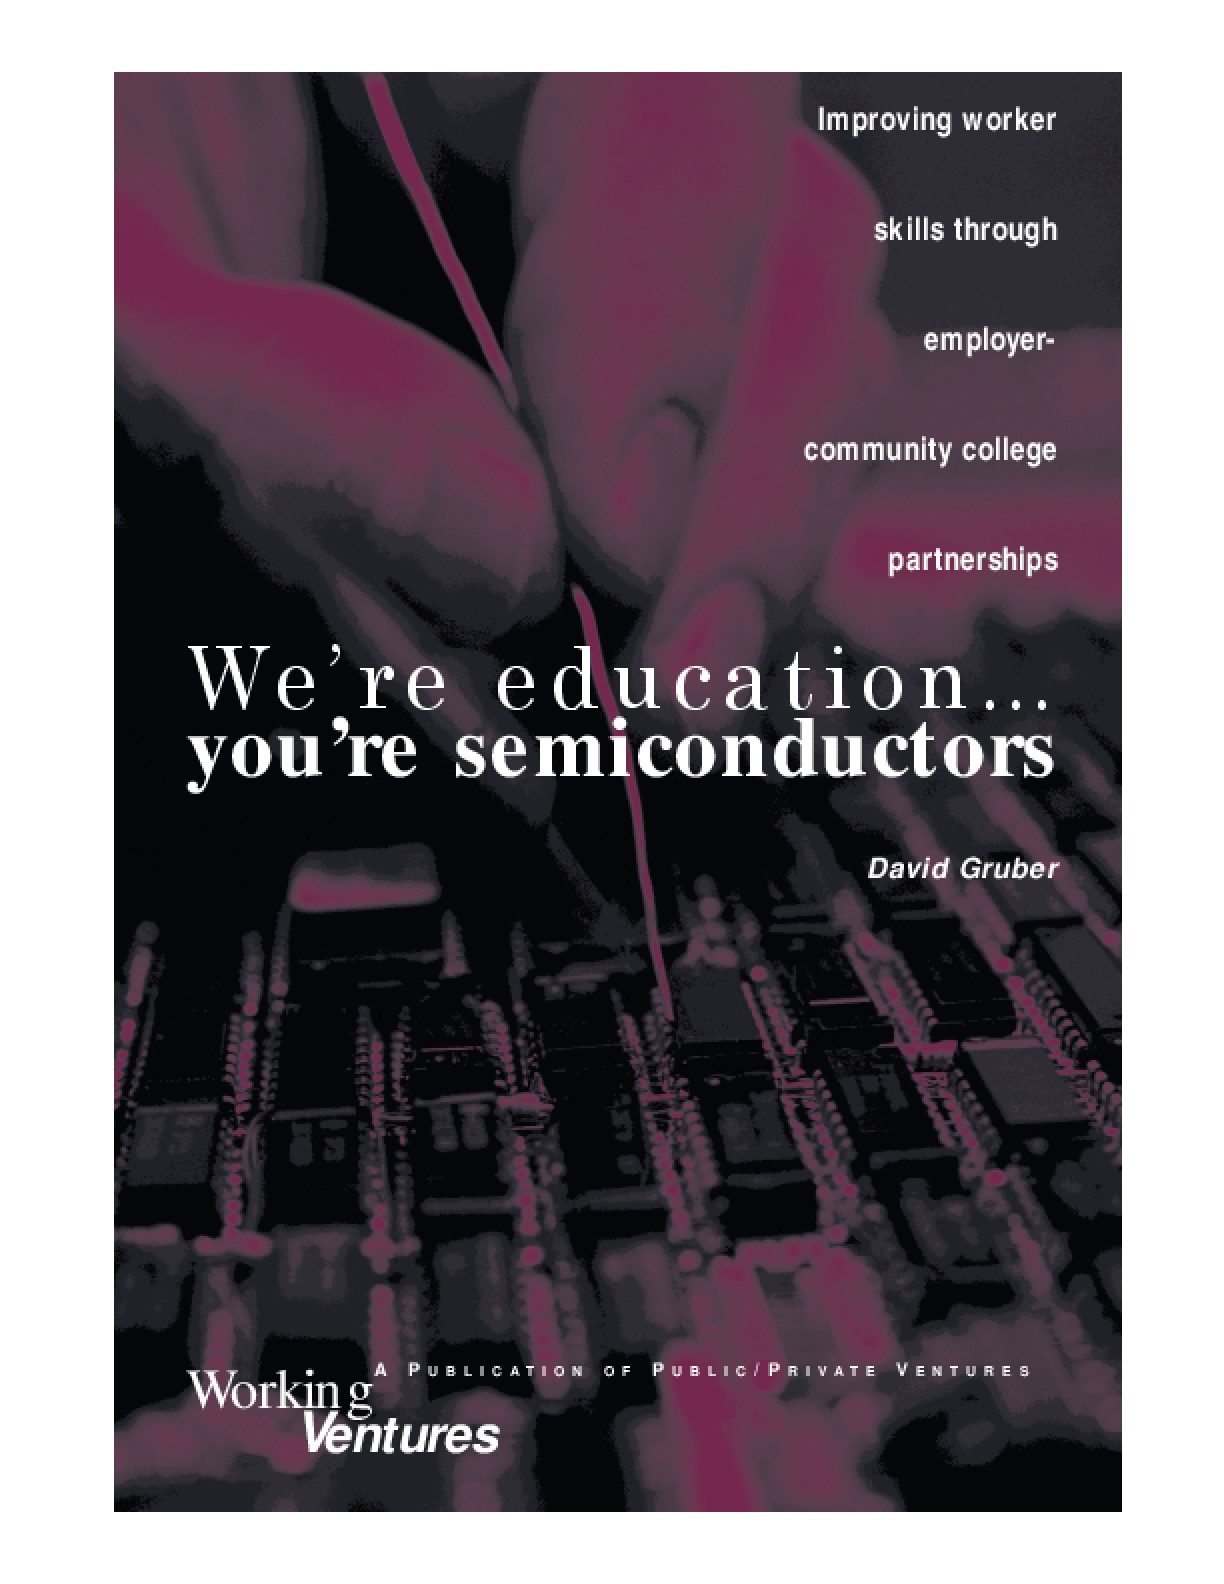 We're Education ... You're Semiconductors: Improving Worker Skills Through Employer-Community College Partnerships